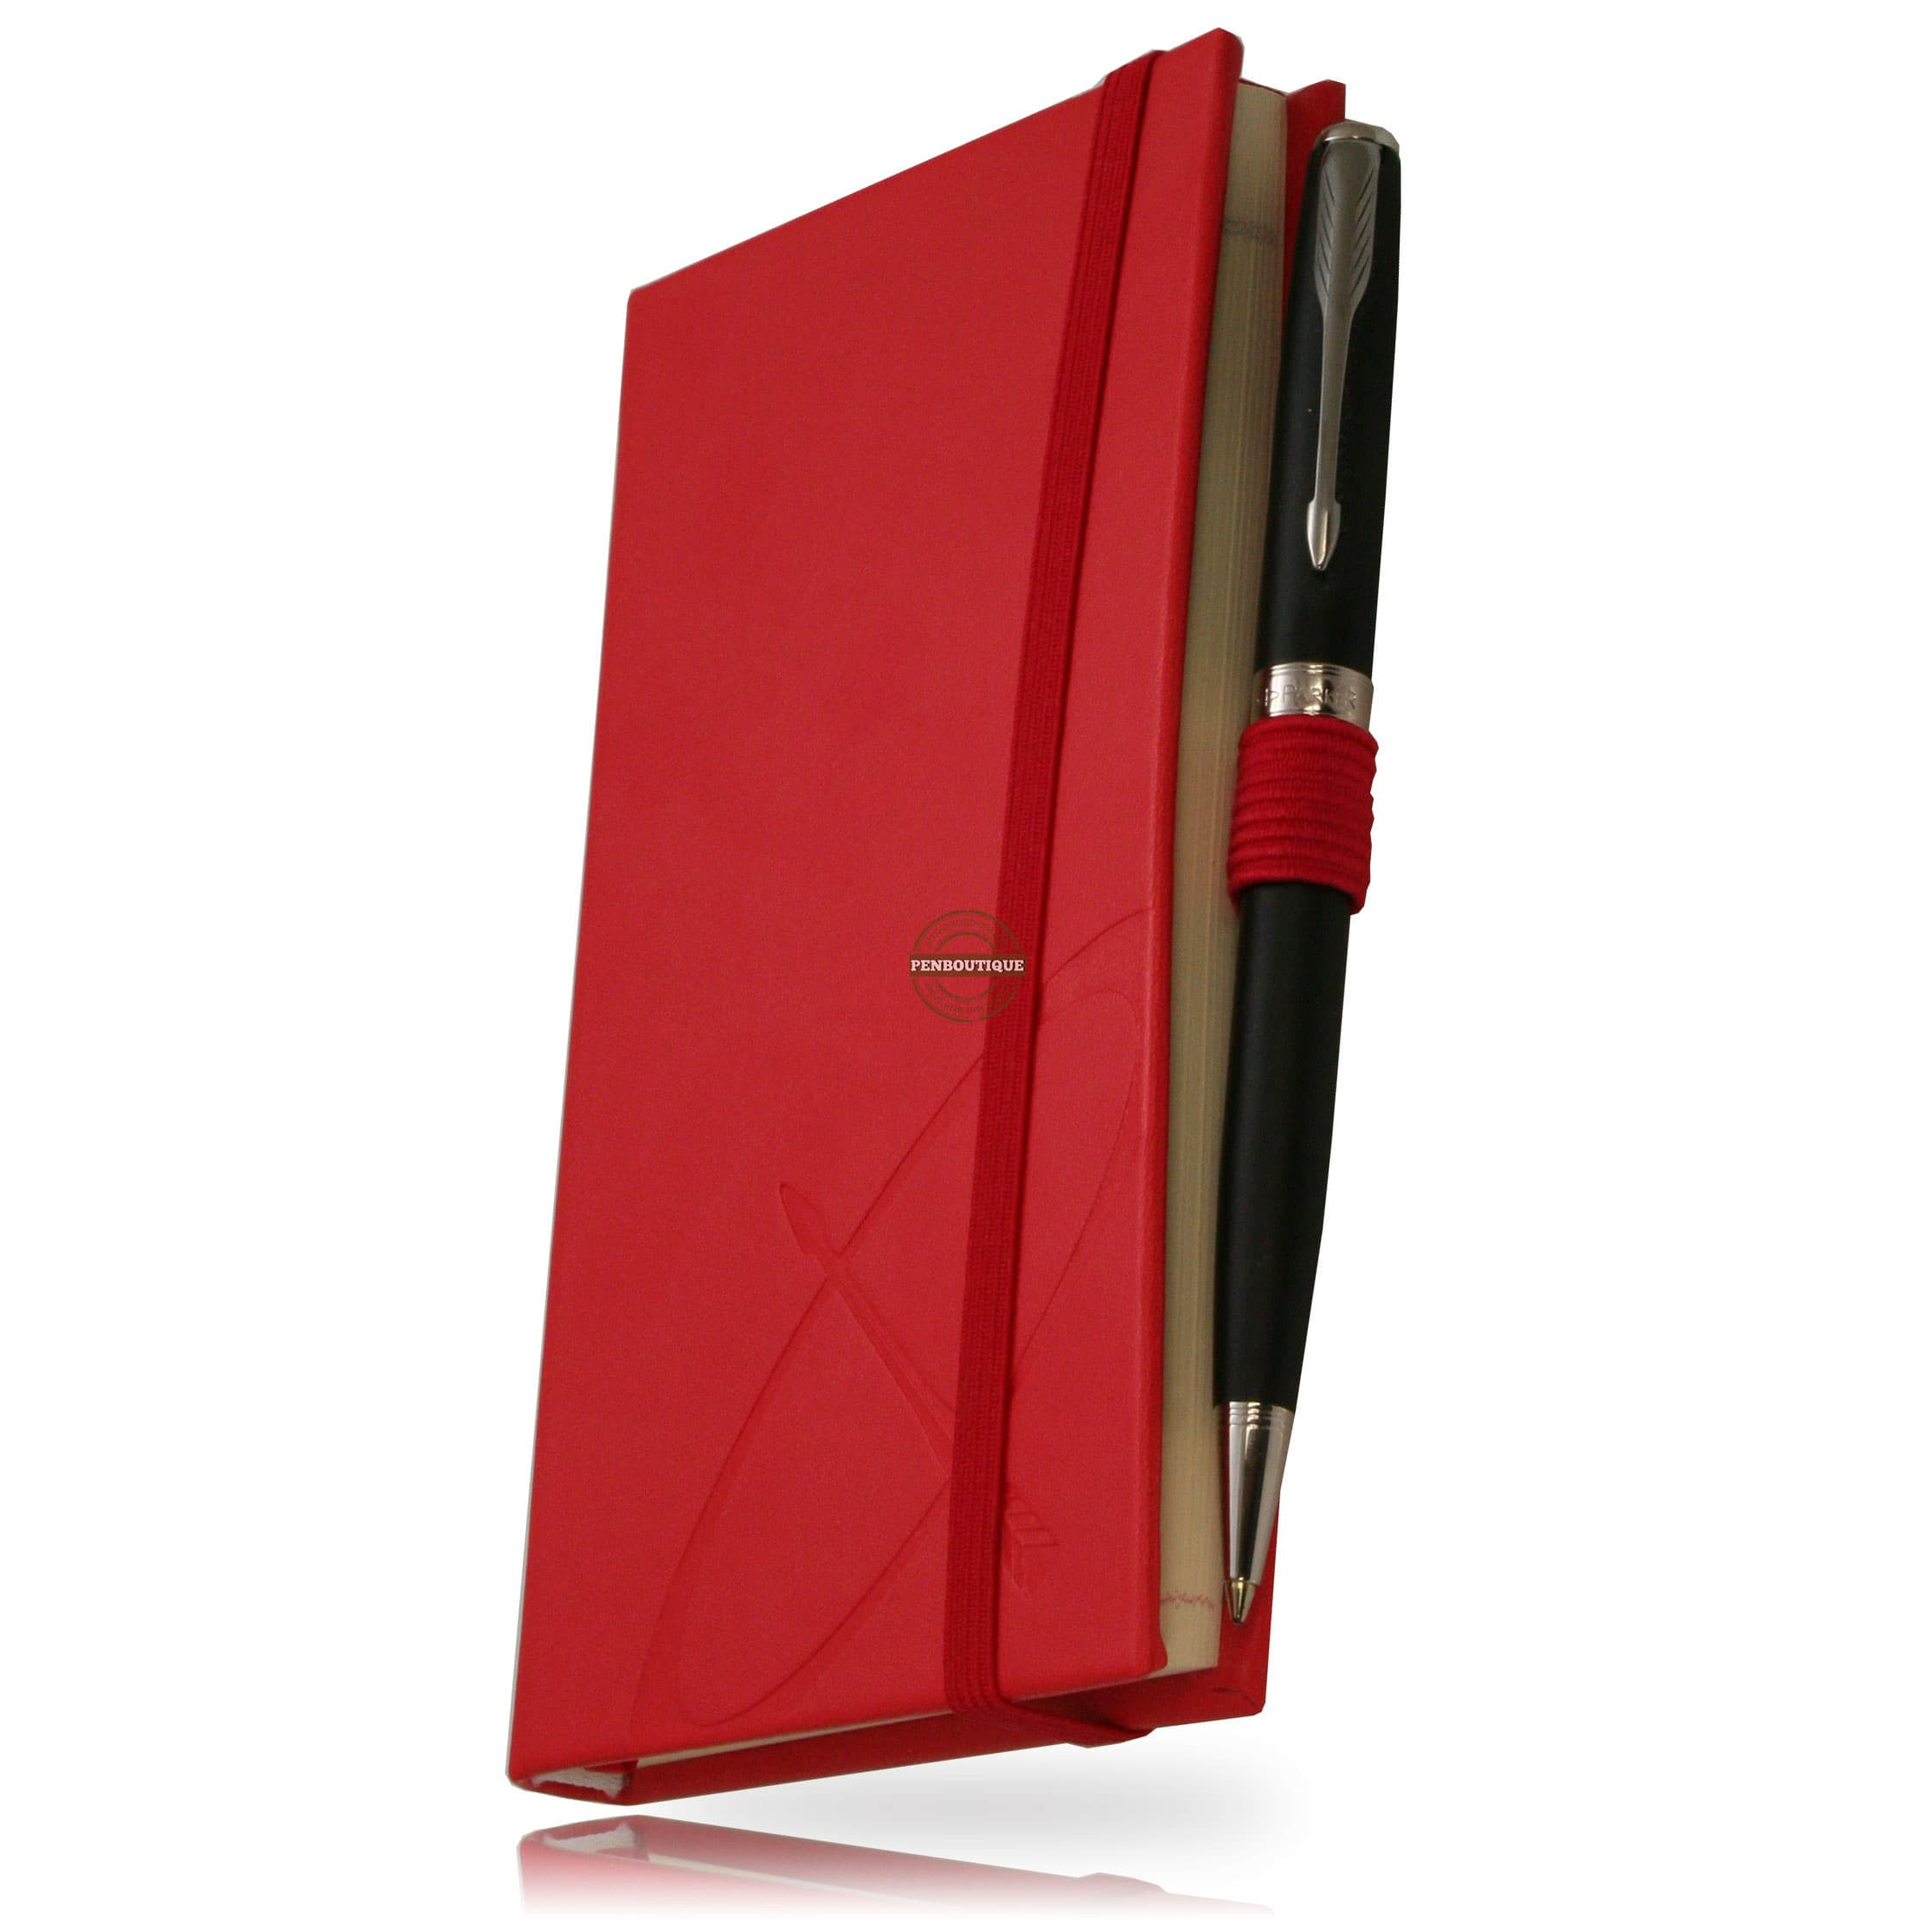 Parker Sonnet Matte Black CT Ballpoint/Red Notebook Gift Set